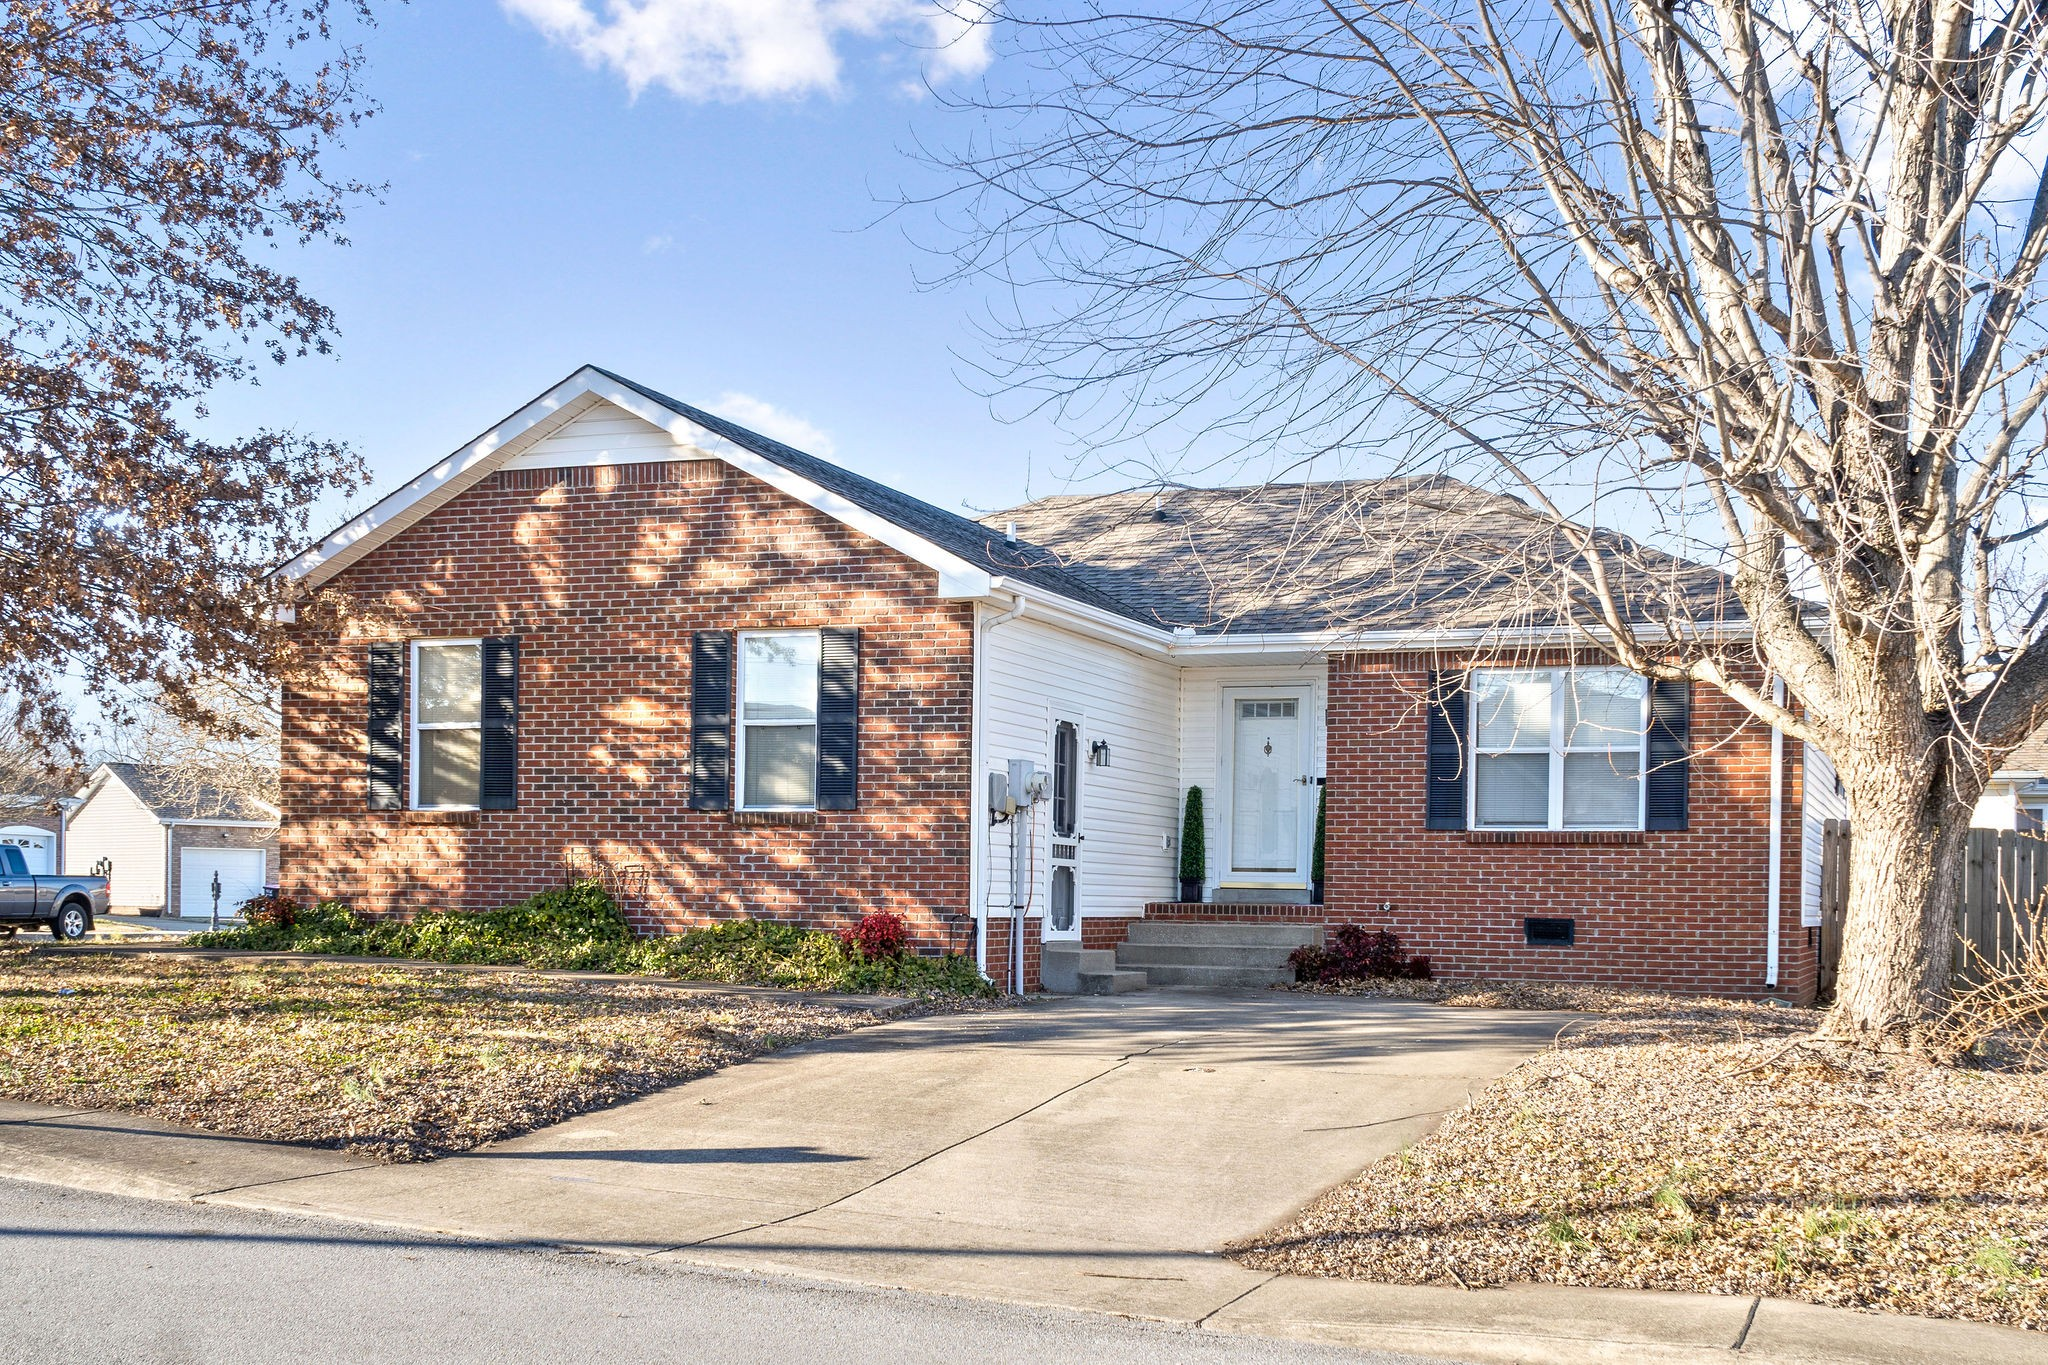 Check Out This Adorable Ranch Home on a Corner Lot Conveniently Located to Close to Ft Campbell - NEW Carpet - NEW Vinyl in Bathrooms, Laundry Room, and Kitchen -  NEW Paint - NEW Refrigerator - MUST SEE! Don't Wait,This One Will Go QUICK!